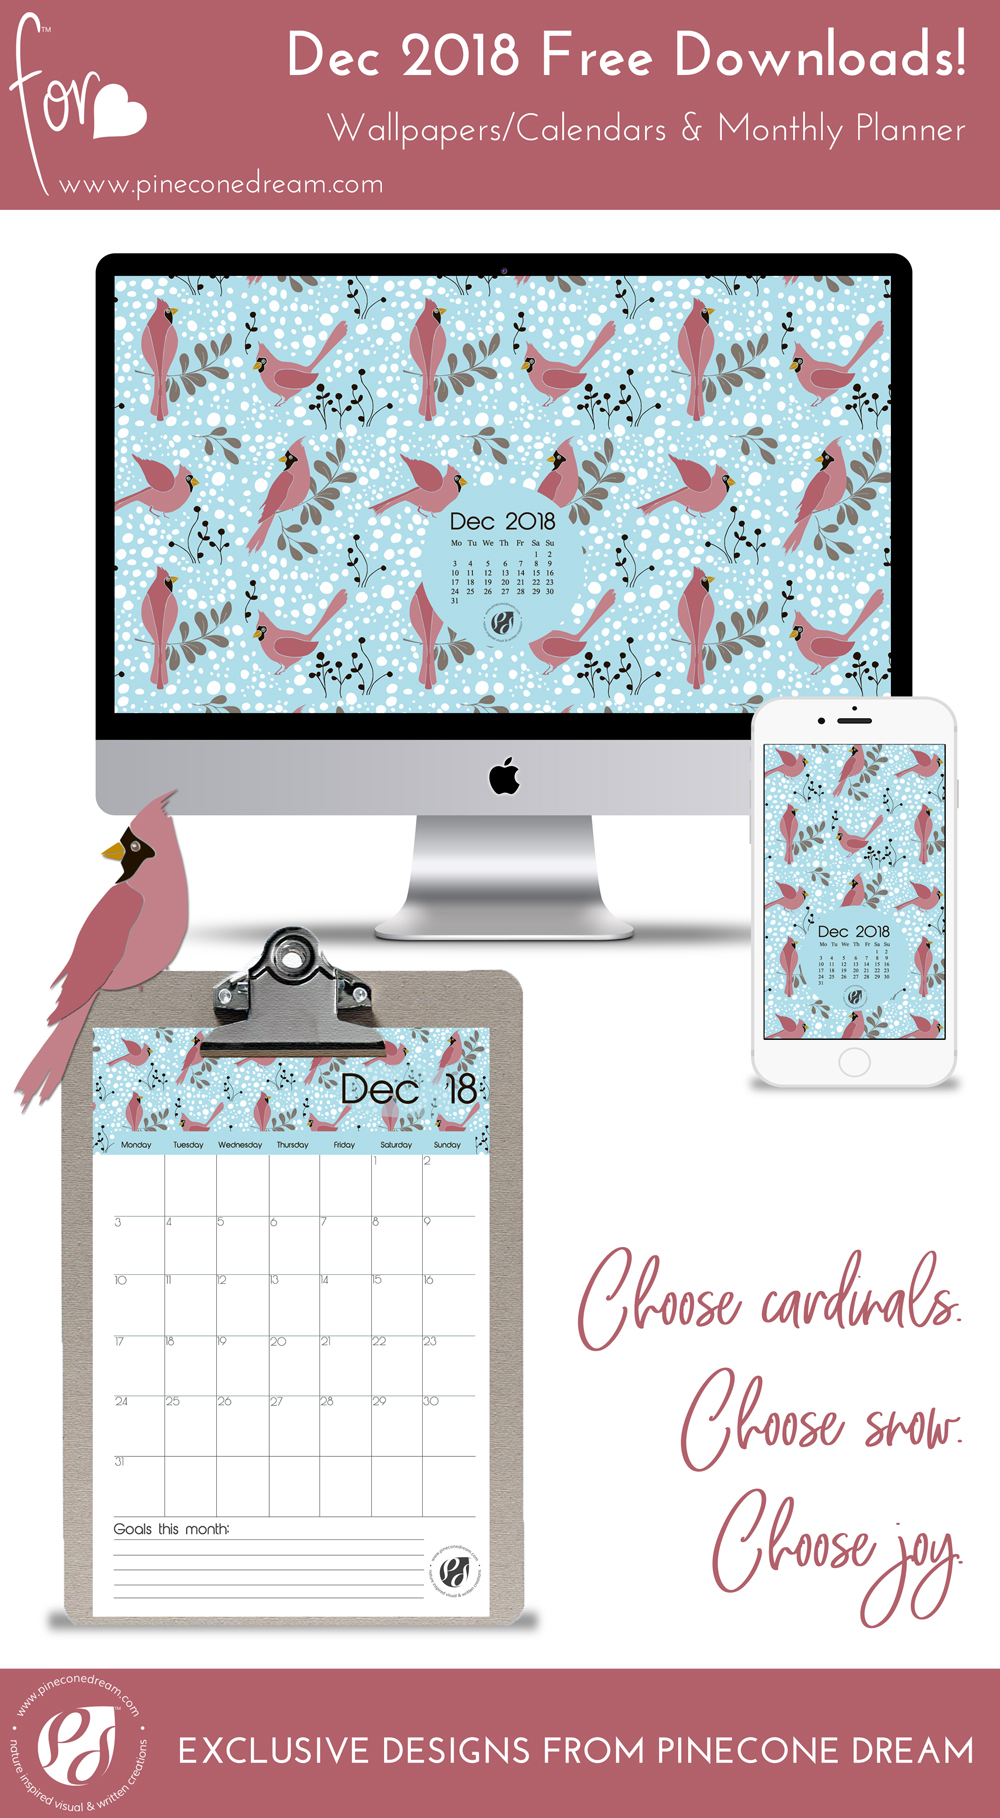 Printable planner Dec 2018, desktop calendar wallpaper, mobile background for winter